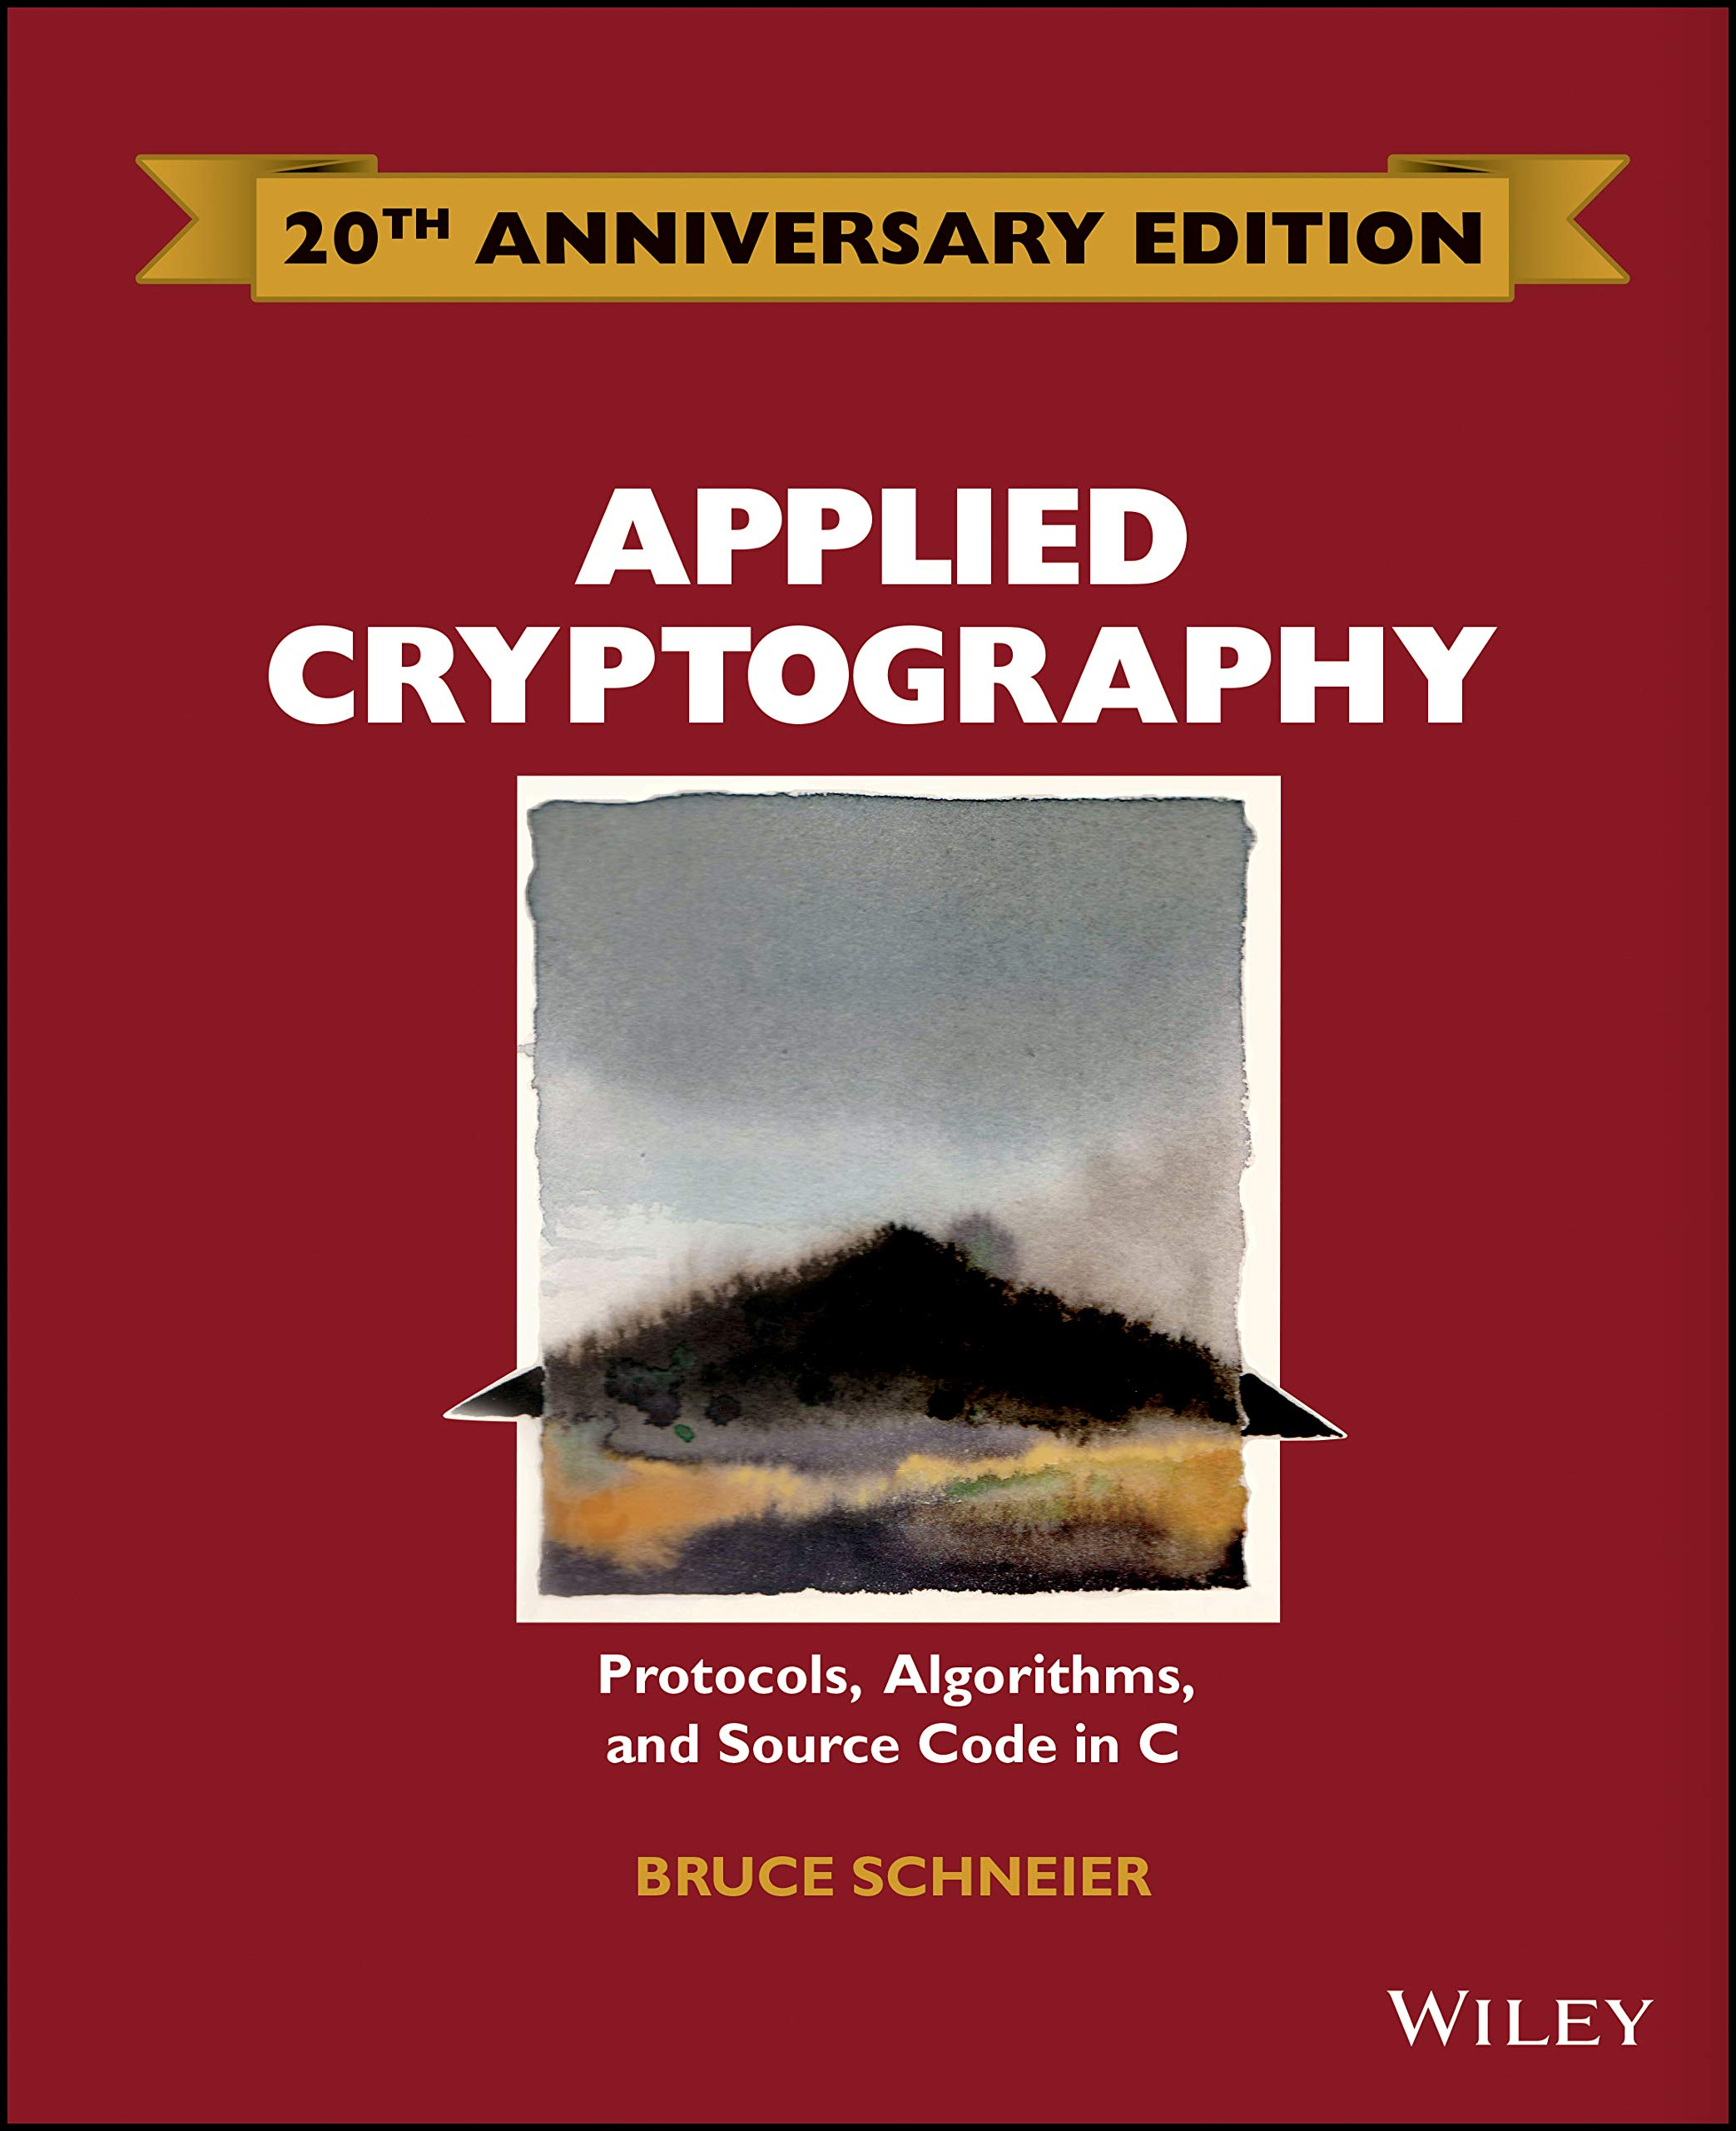 Applied Cryptography: Protocols, Algorithms and Source Code